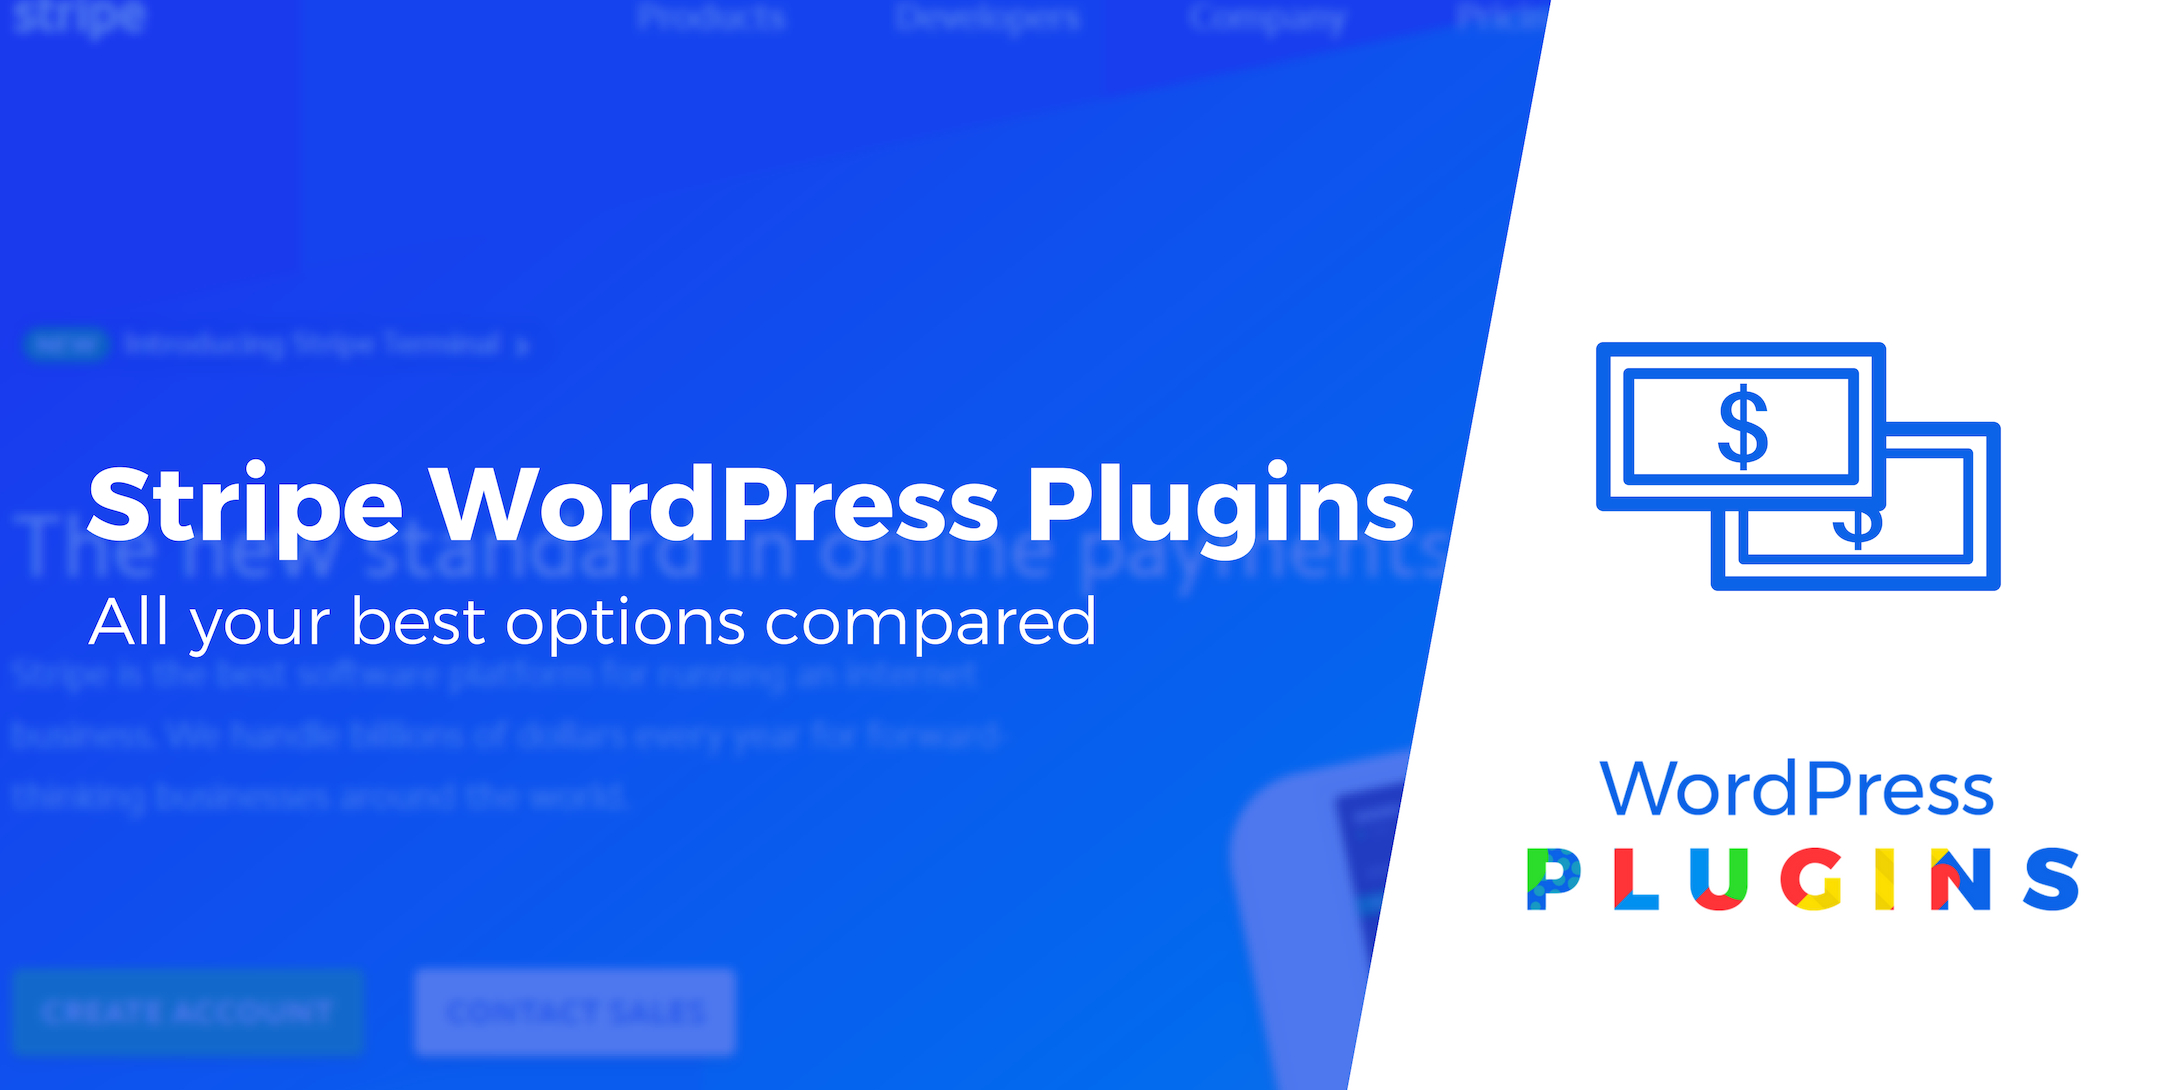 What's the Best Stripe WordPress Plugin? We Compare 5 Options